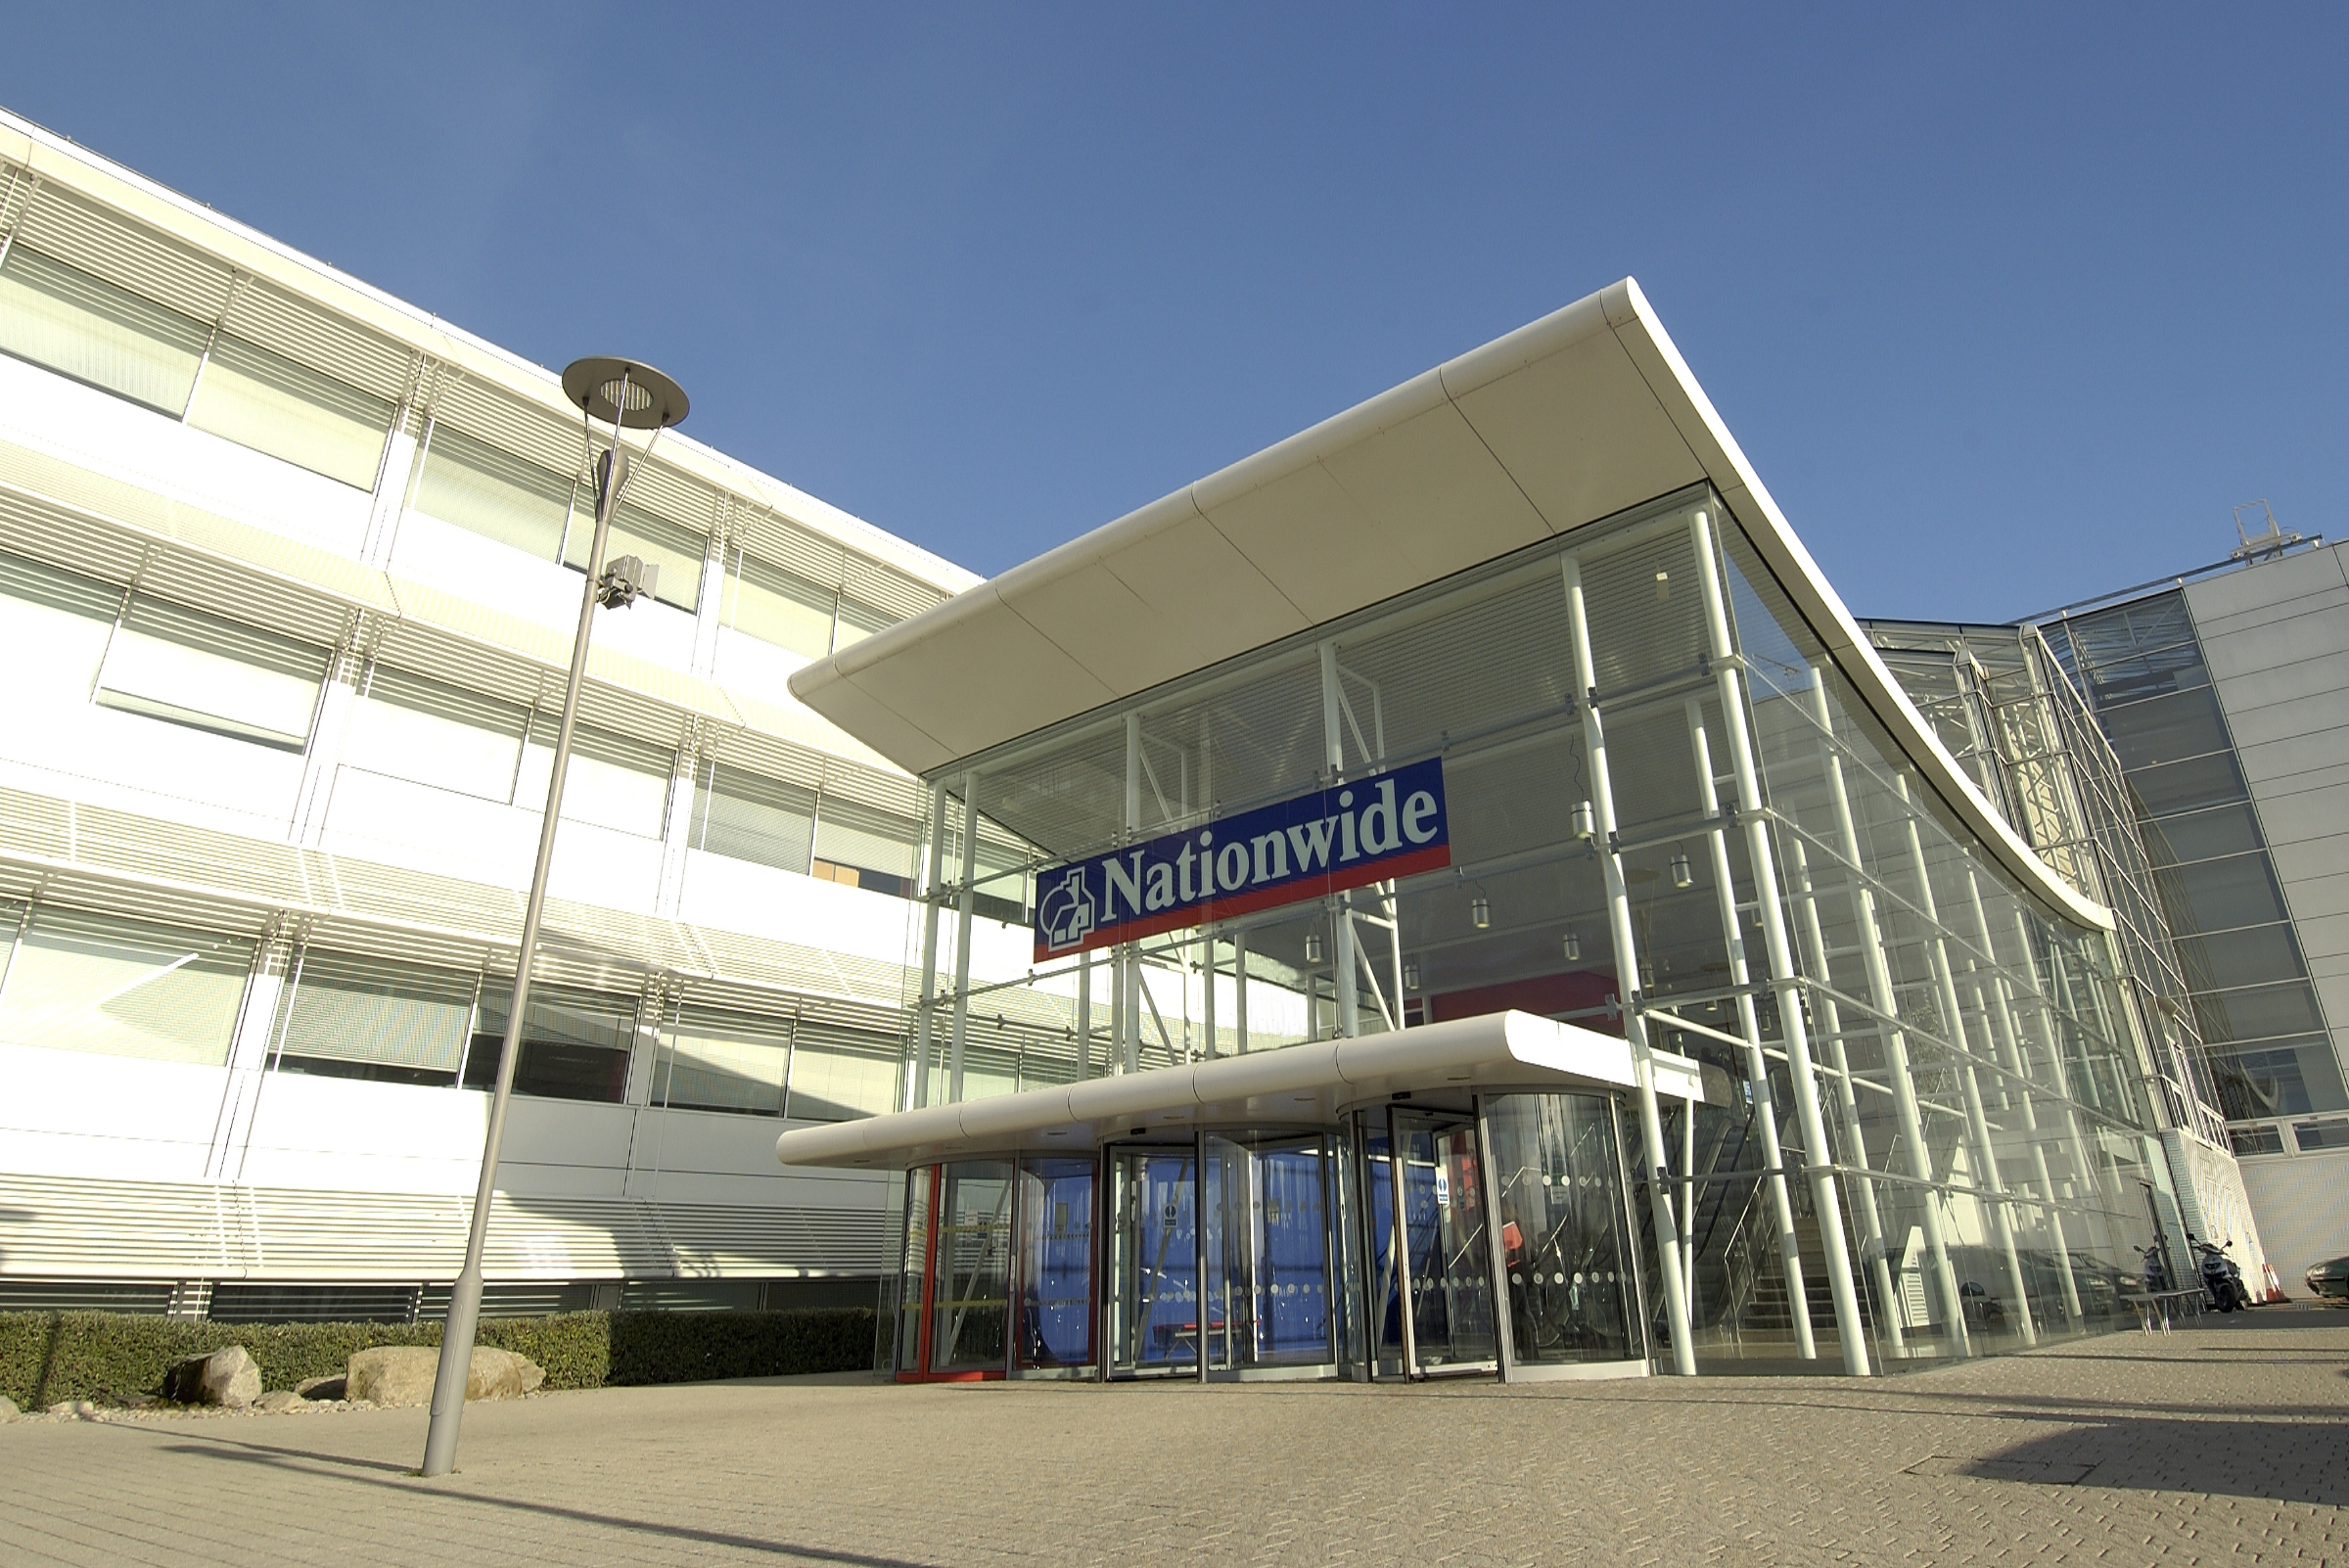 Nationwide House, head office in Swindon.Credit: Pixmedia.www.pixmedia.co.uk.